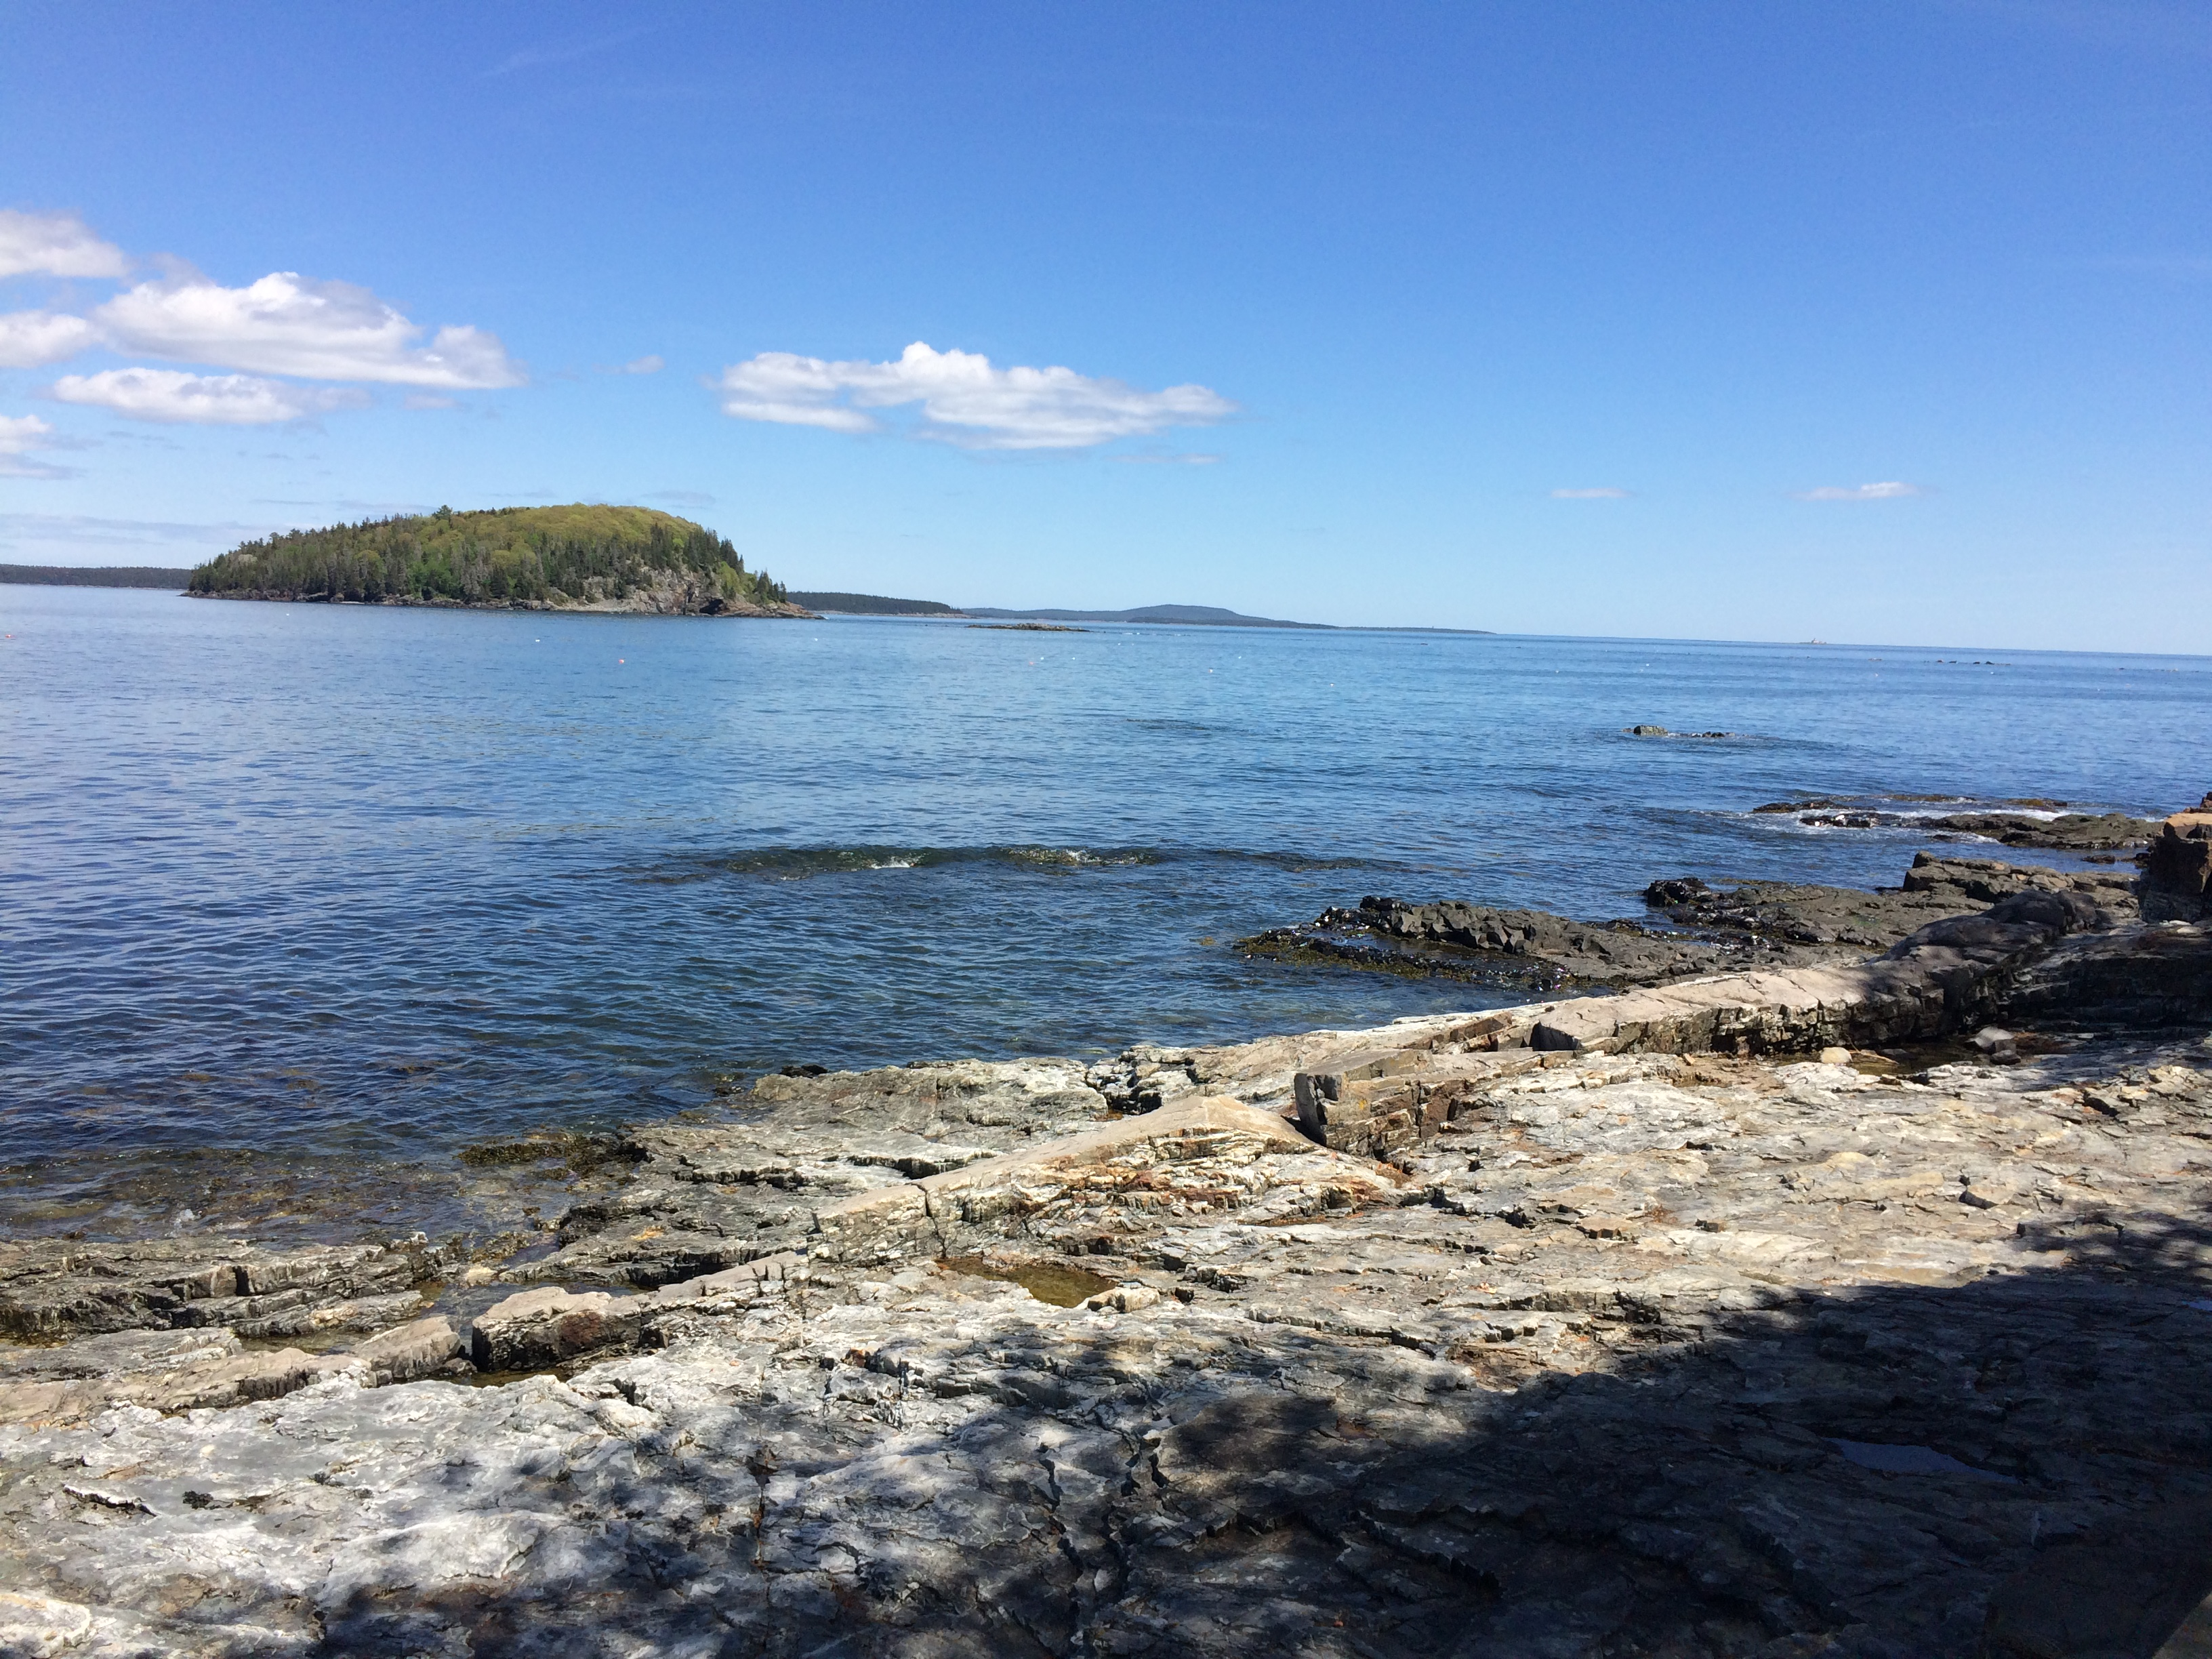 Porcupine Islands, Bar Harbor